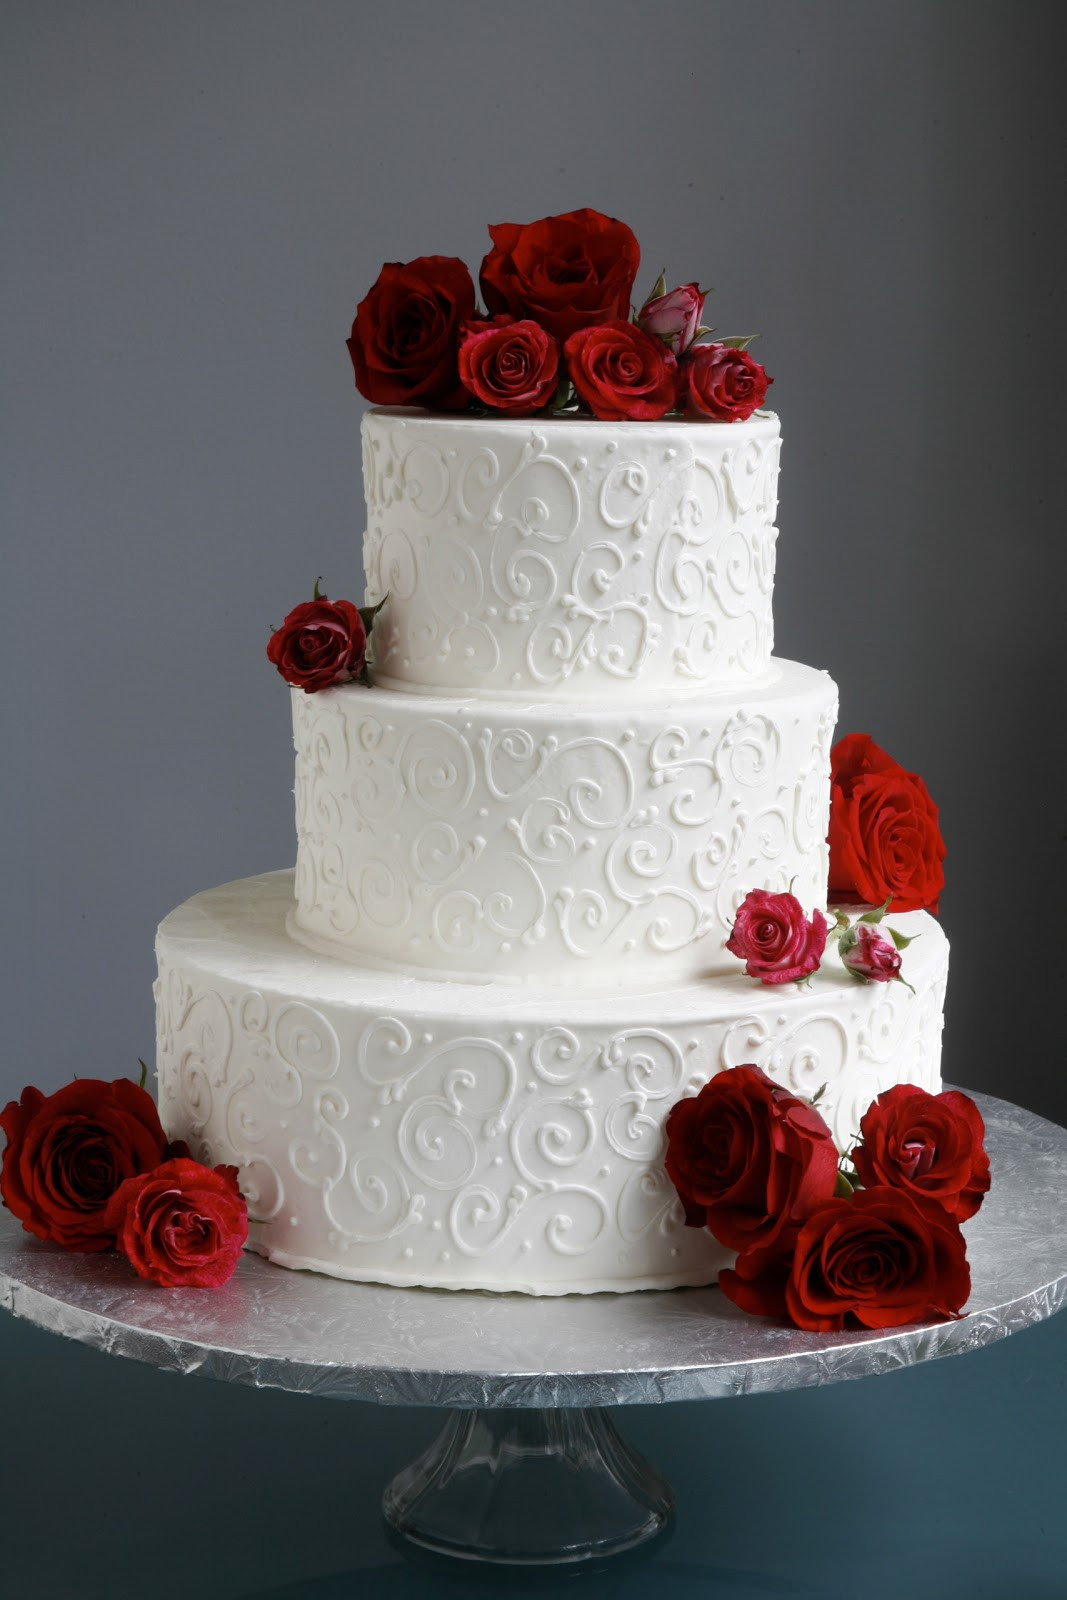 Wedding Cakes Red Roses  A Simple Cake Wedding Cake with Fresh Flowers From